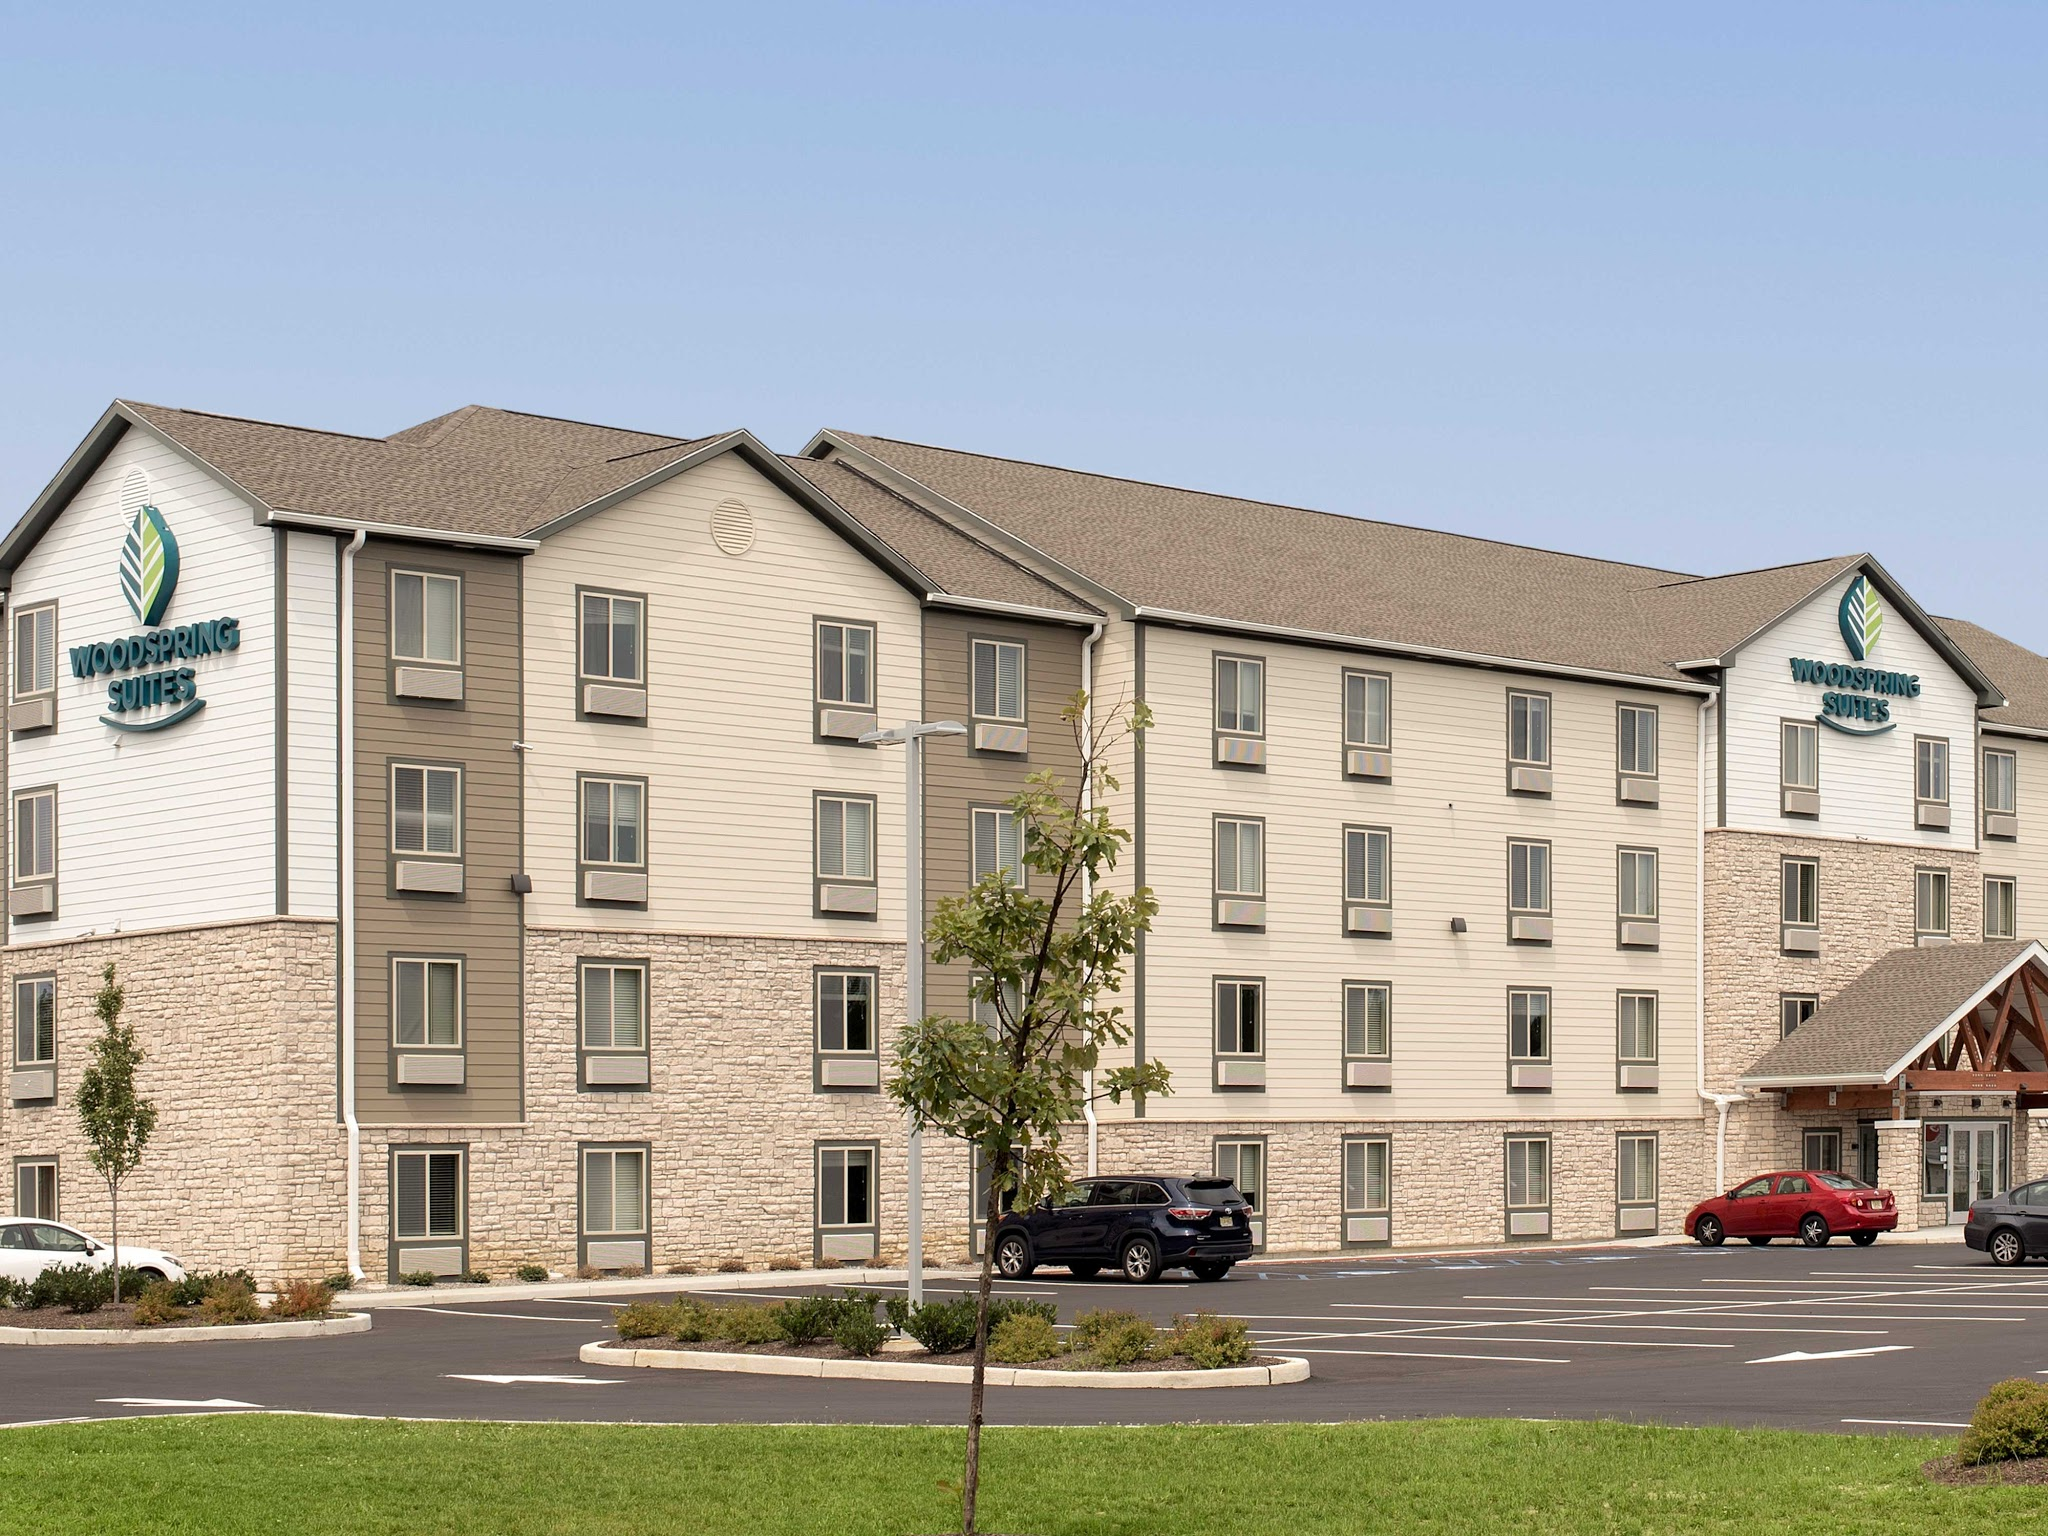 WoodSpring Suites Cherry Hill image 14